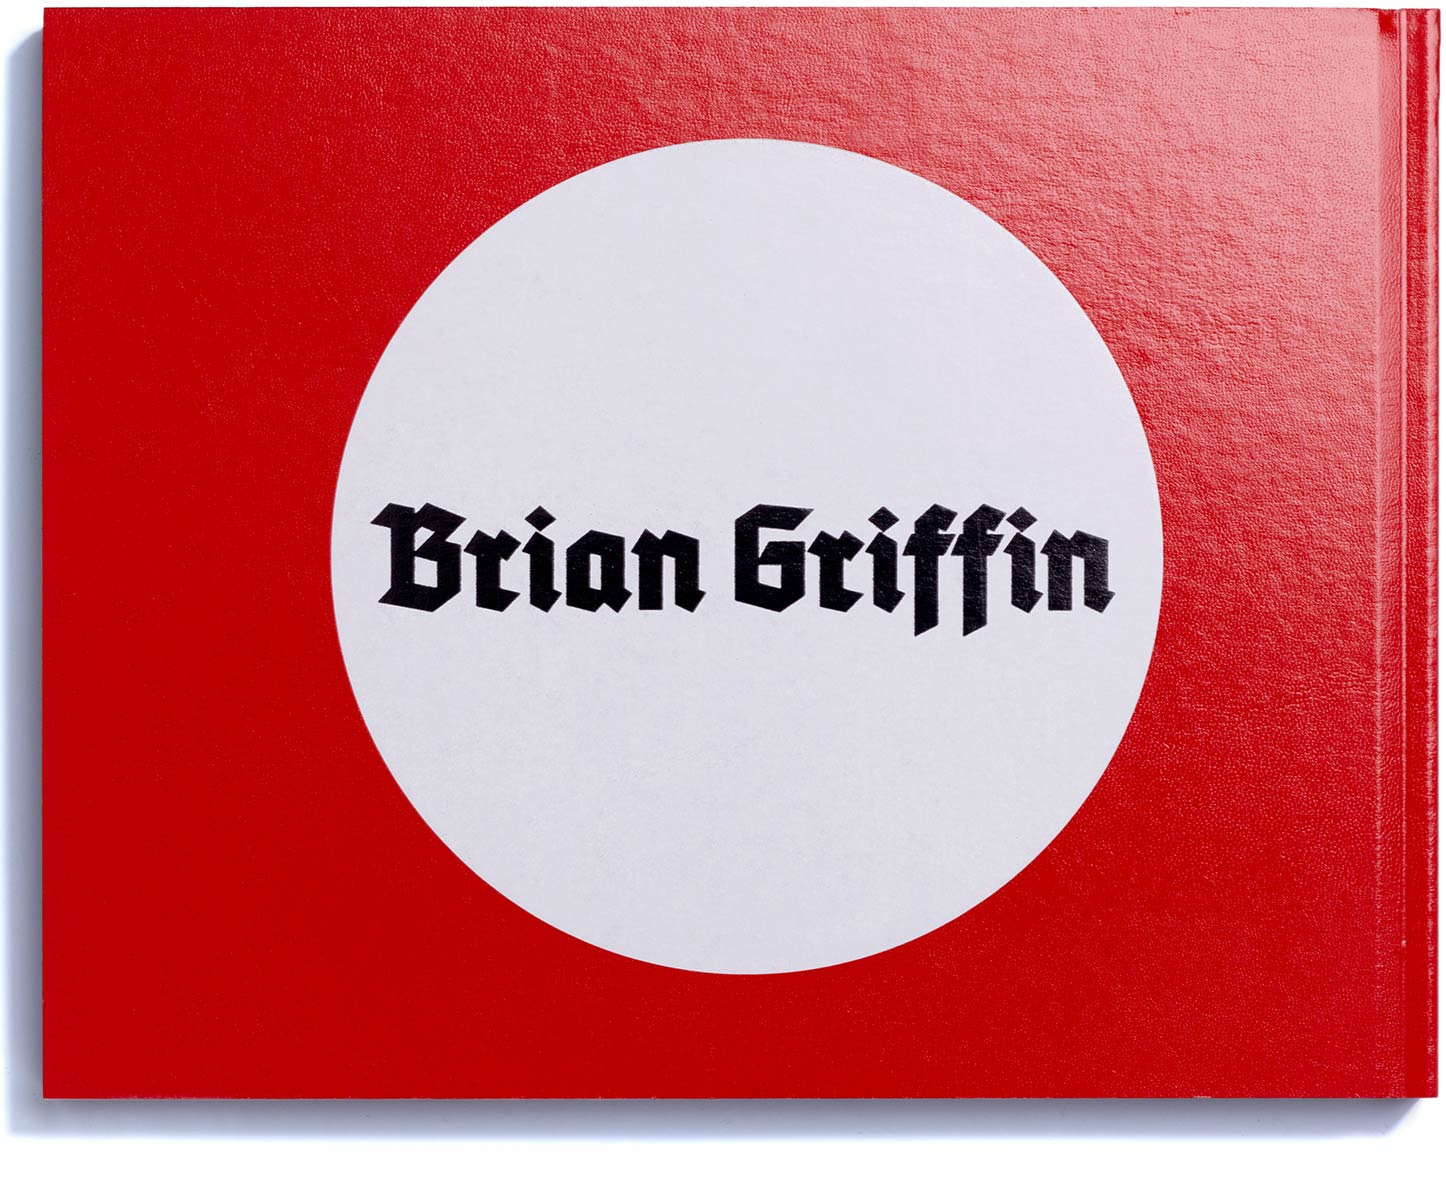 Browns Editions, Browns Editions Publishing, Browns Editions Books, Browns Editions Brian Griffin, Browns Editions Himmelstrasse, Browns Editions Brian Griffin Himmelstrasse